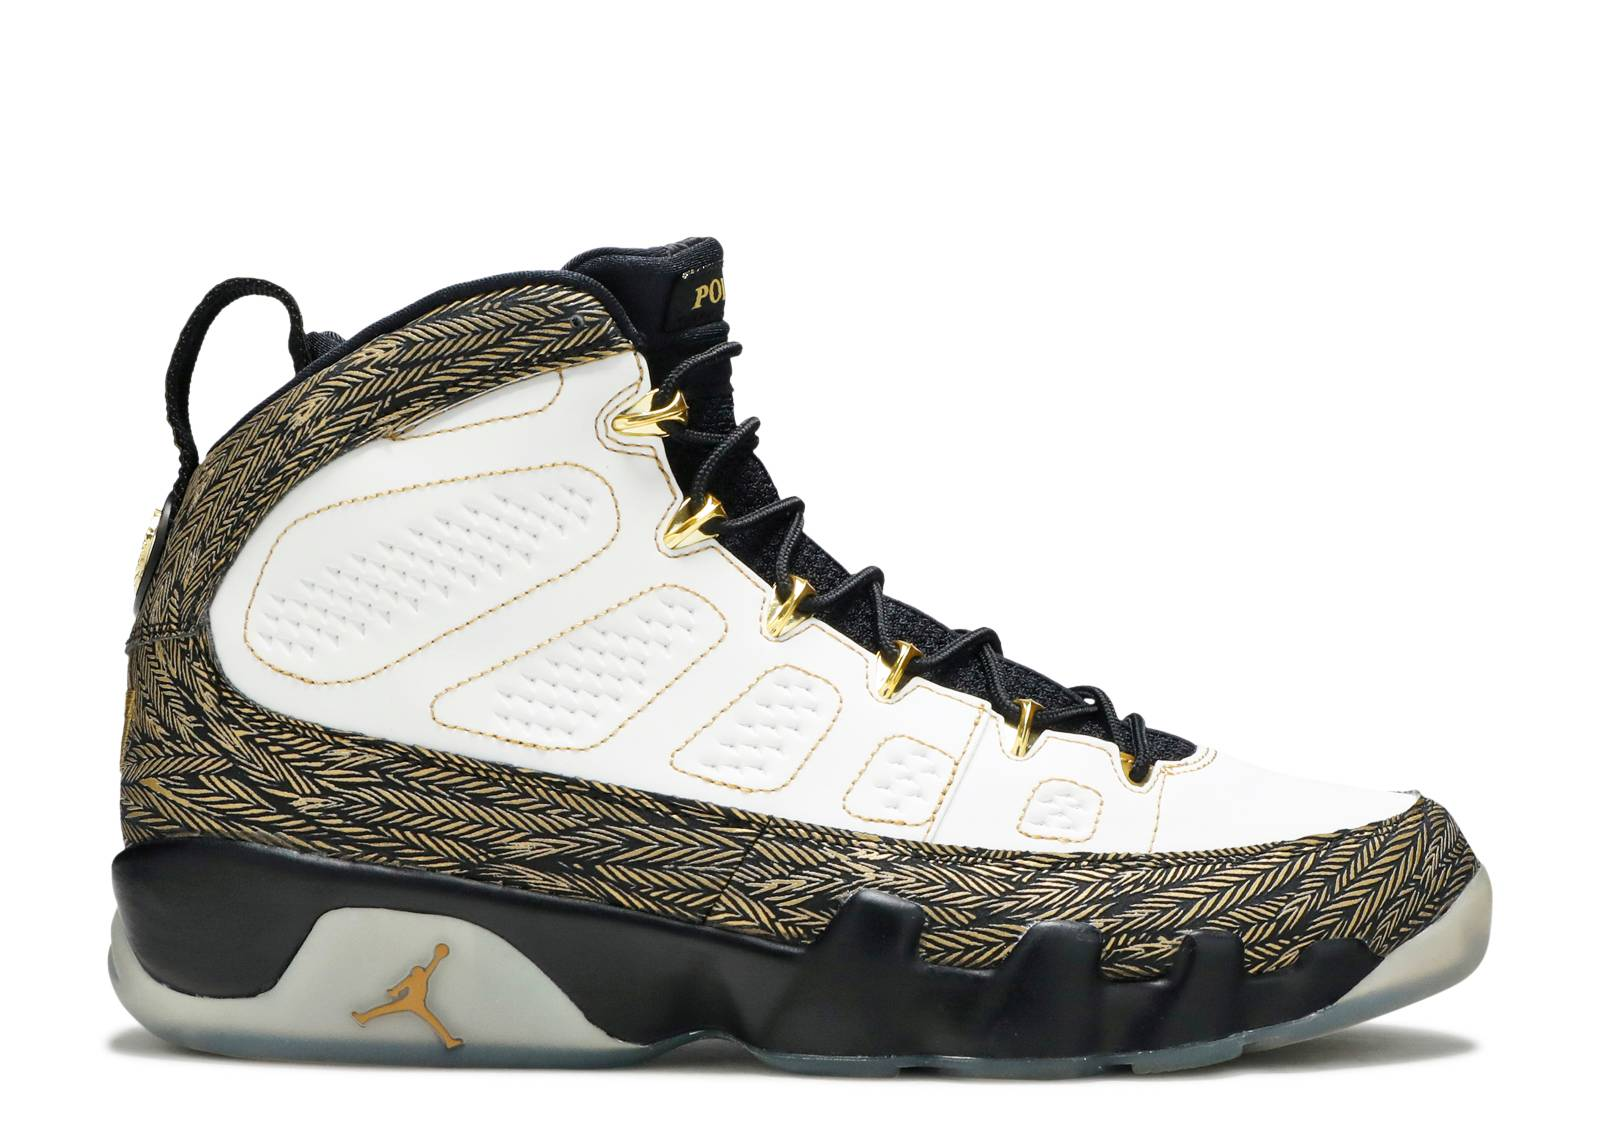 Air Jordan 9 Retro Doernbecher White Metallic Gold Black Shoes